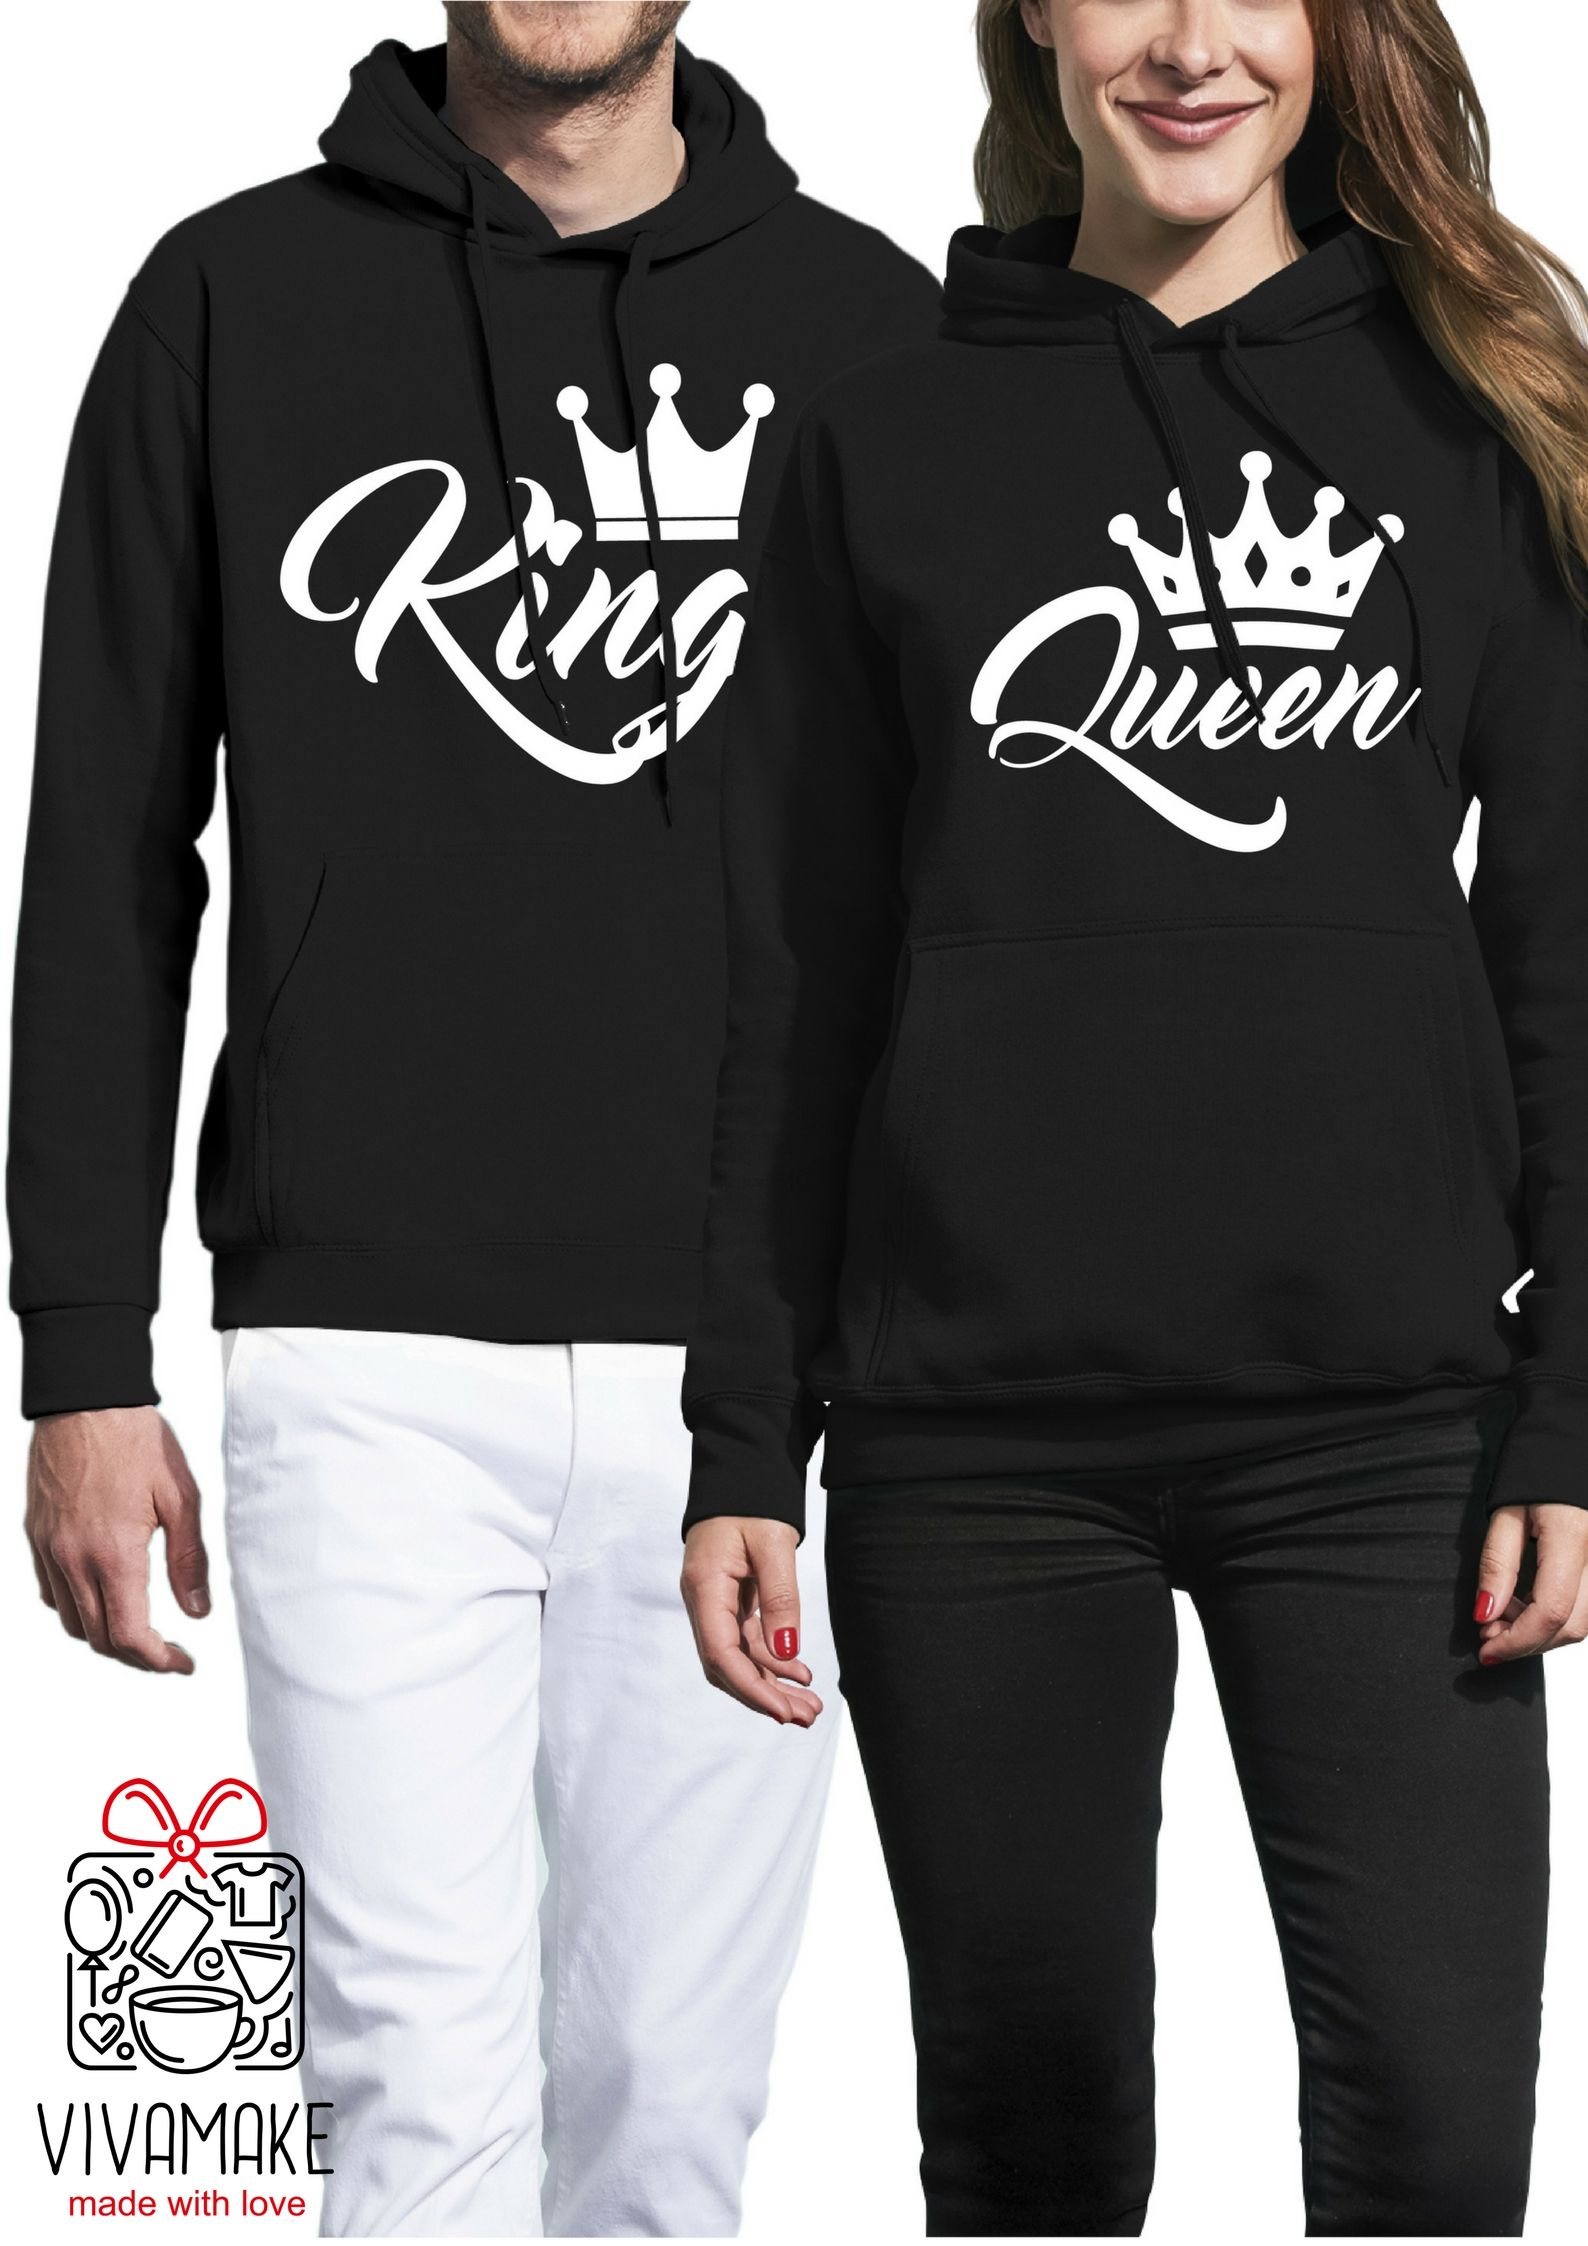 b90a07ed7 king and queen hoodies / king and queen sweatshirts / king queen hoodies / king  queen shirts / king and queen sweatshirts / couple hoodies